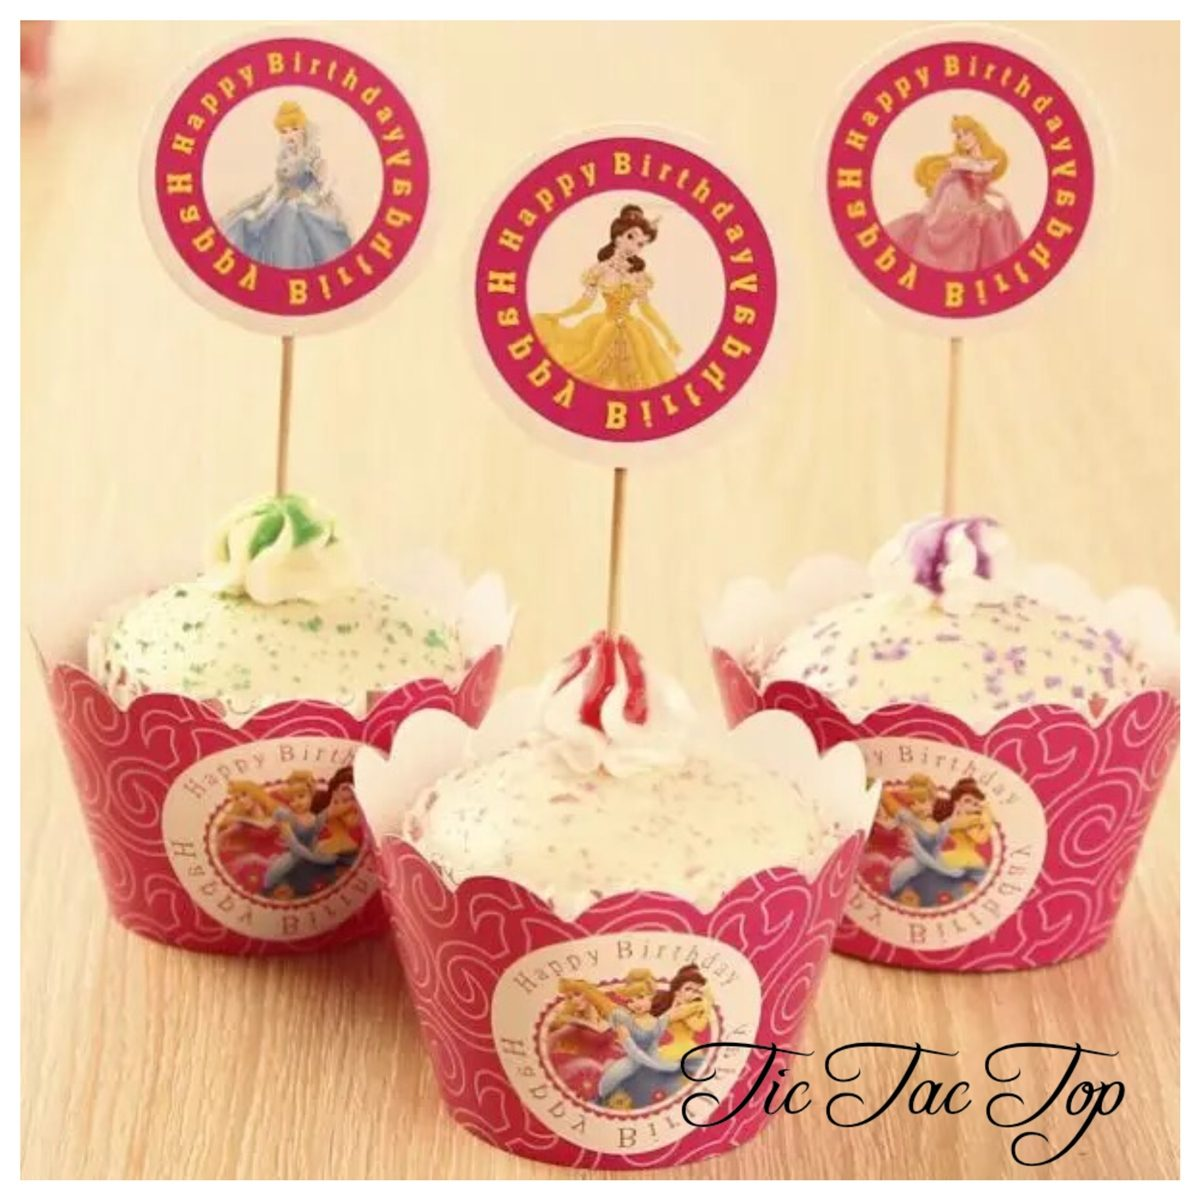 Disney Princess Cupcake Wrappers + Toppers